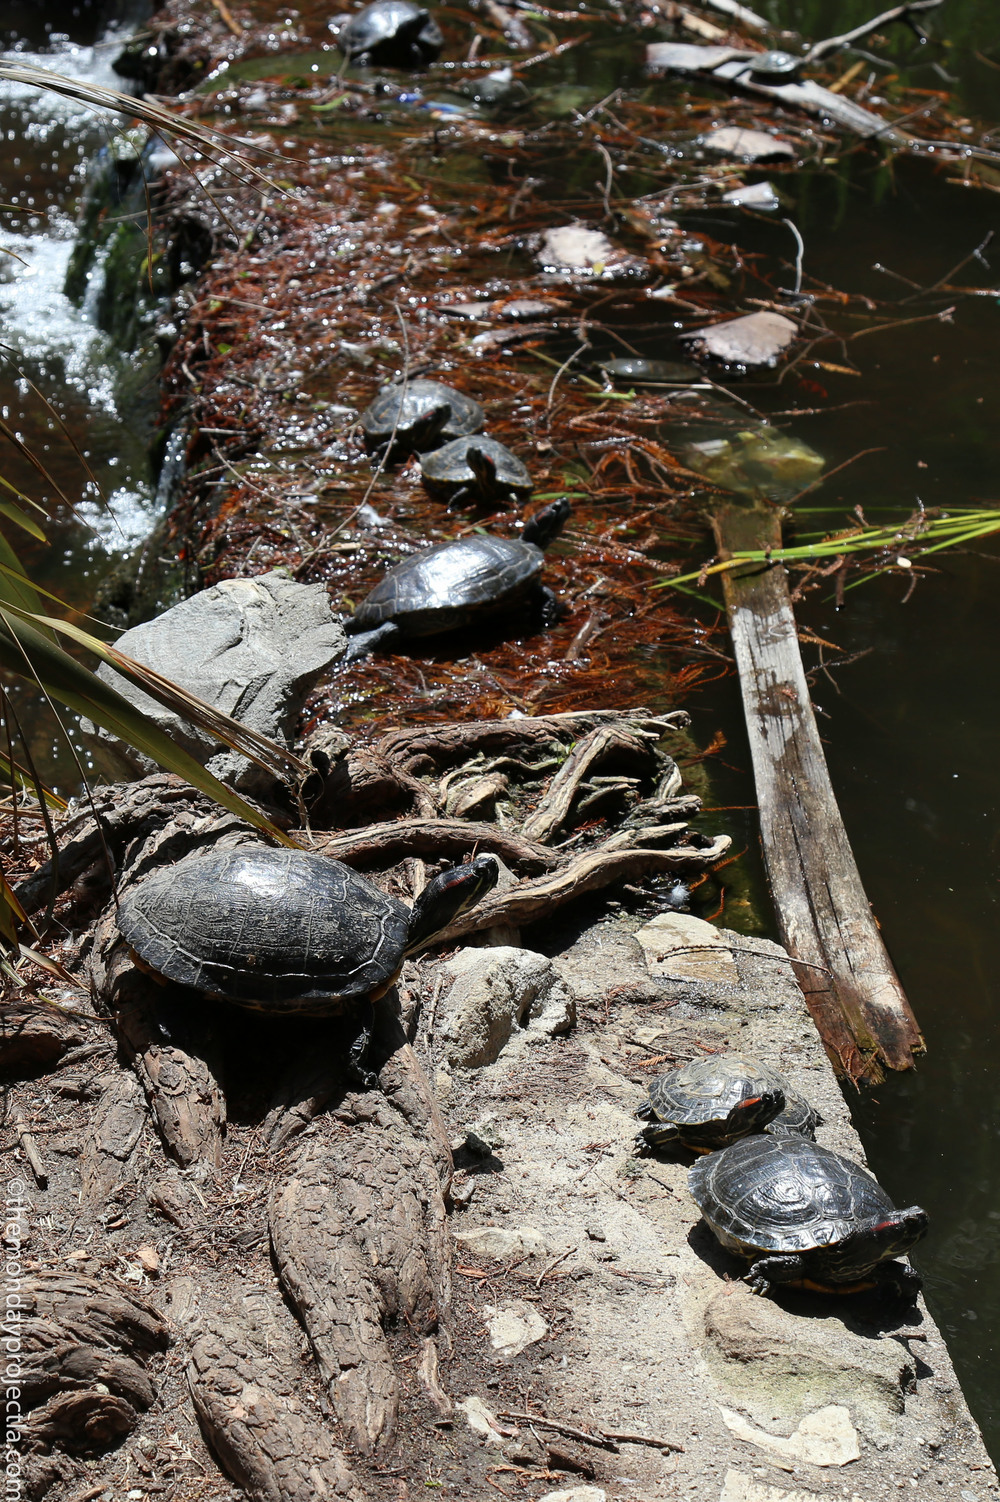 Averill turtles